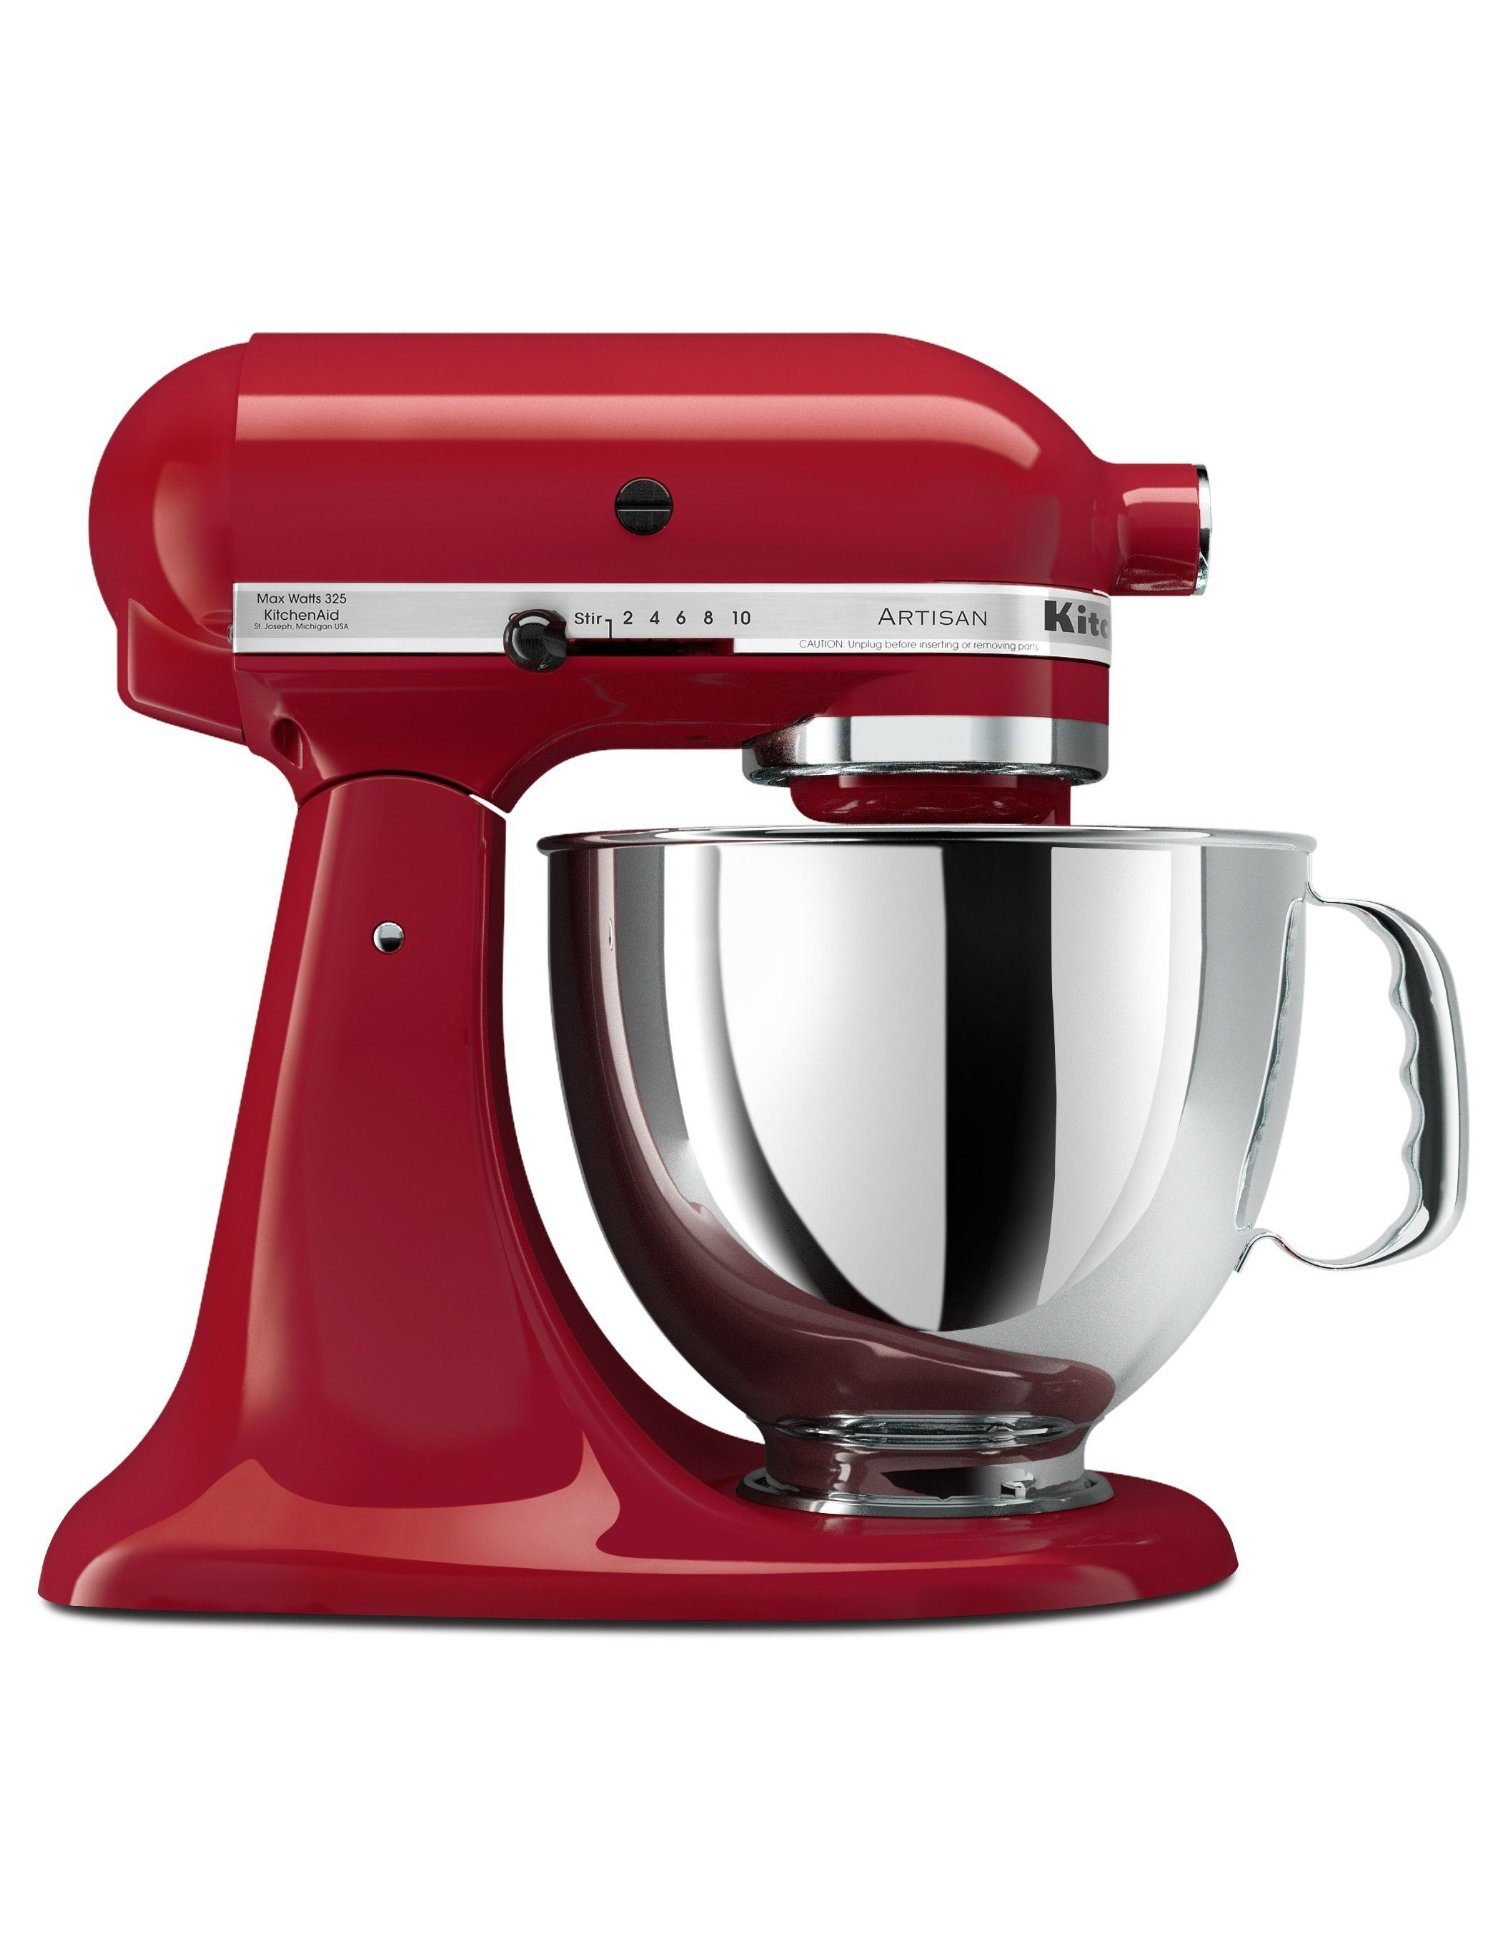 Amazon Red Kitchenaid Artisan 5 Quart Stand Mixers Only After Rebate